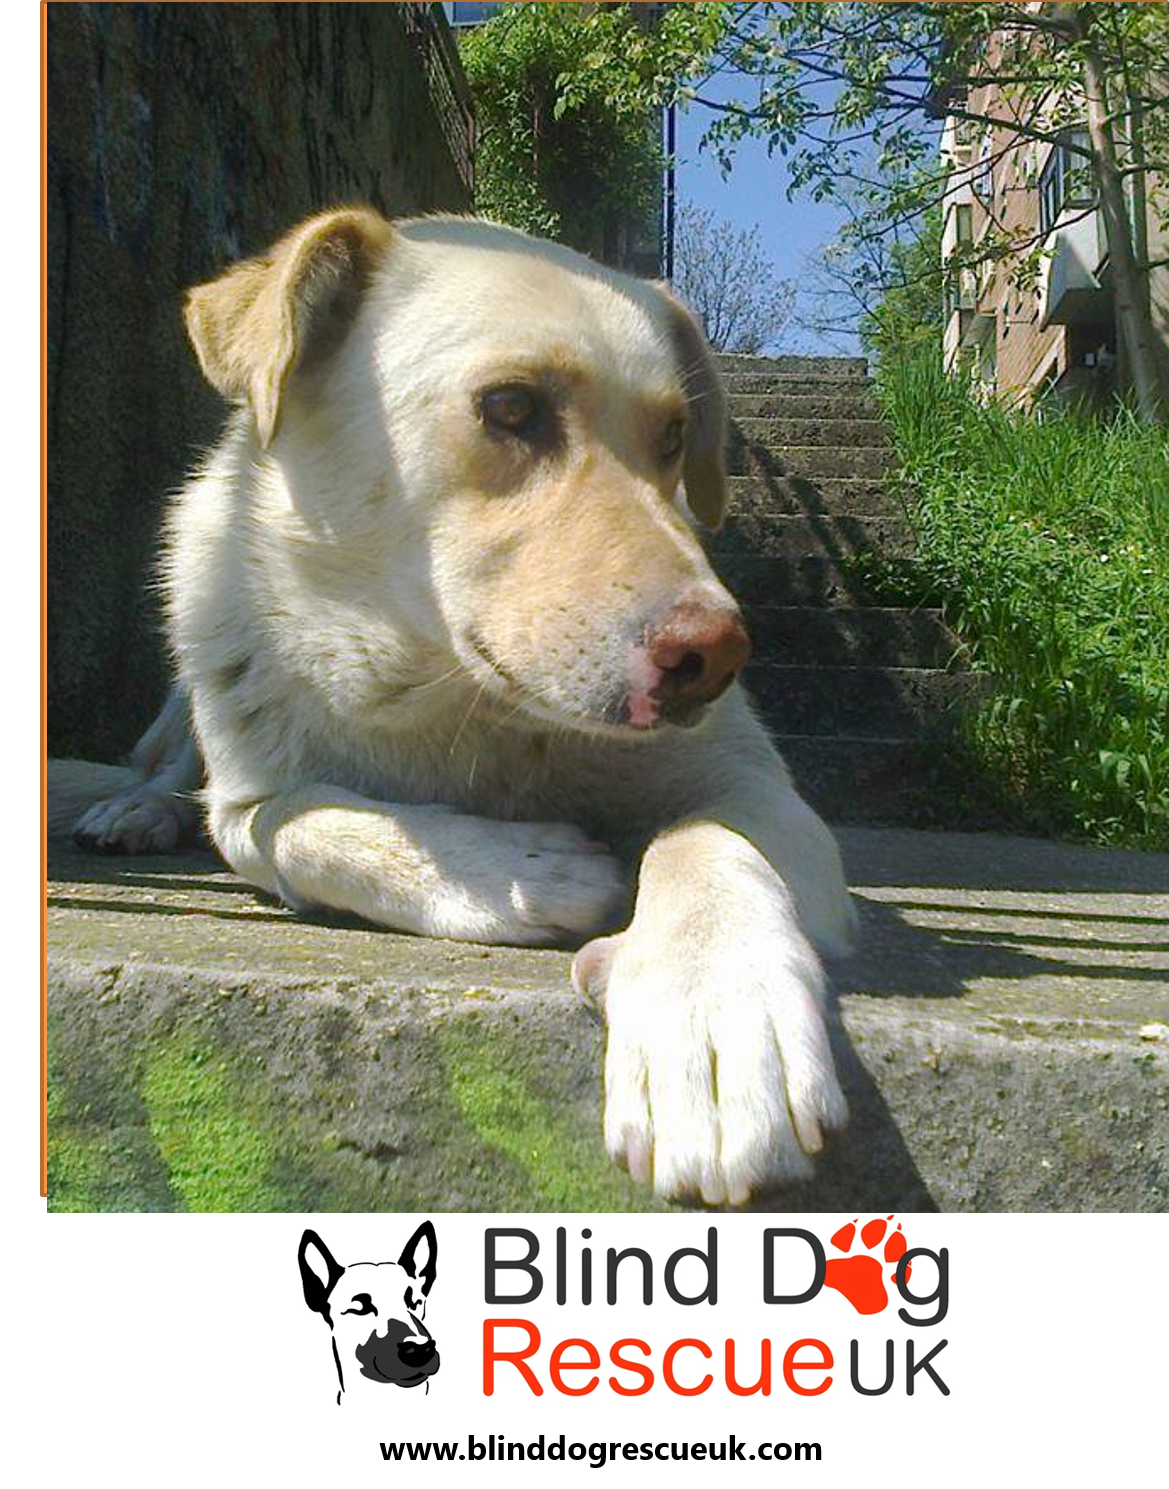 Belkan Is Described As An Absolute Angel Very Sociable Towards People And Other Dogs Despite Suffering Abuse During His Life On The Streets